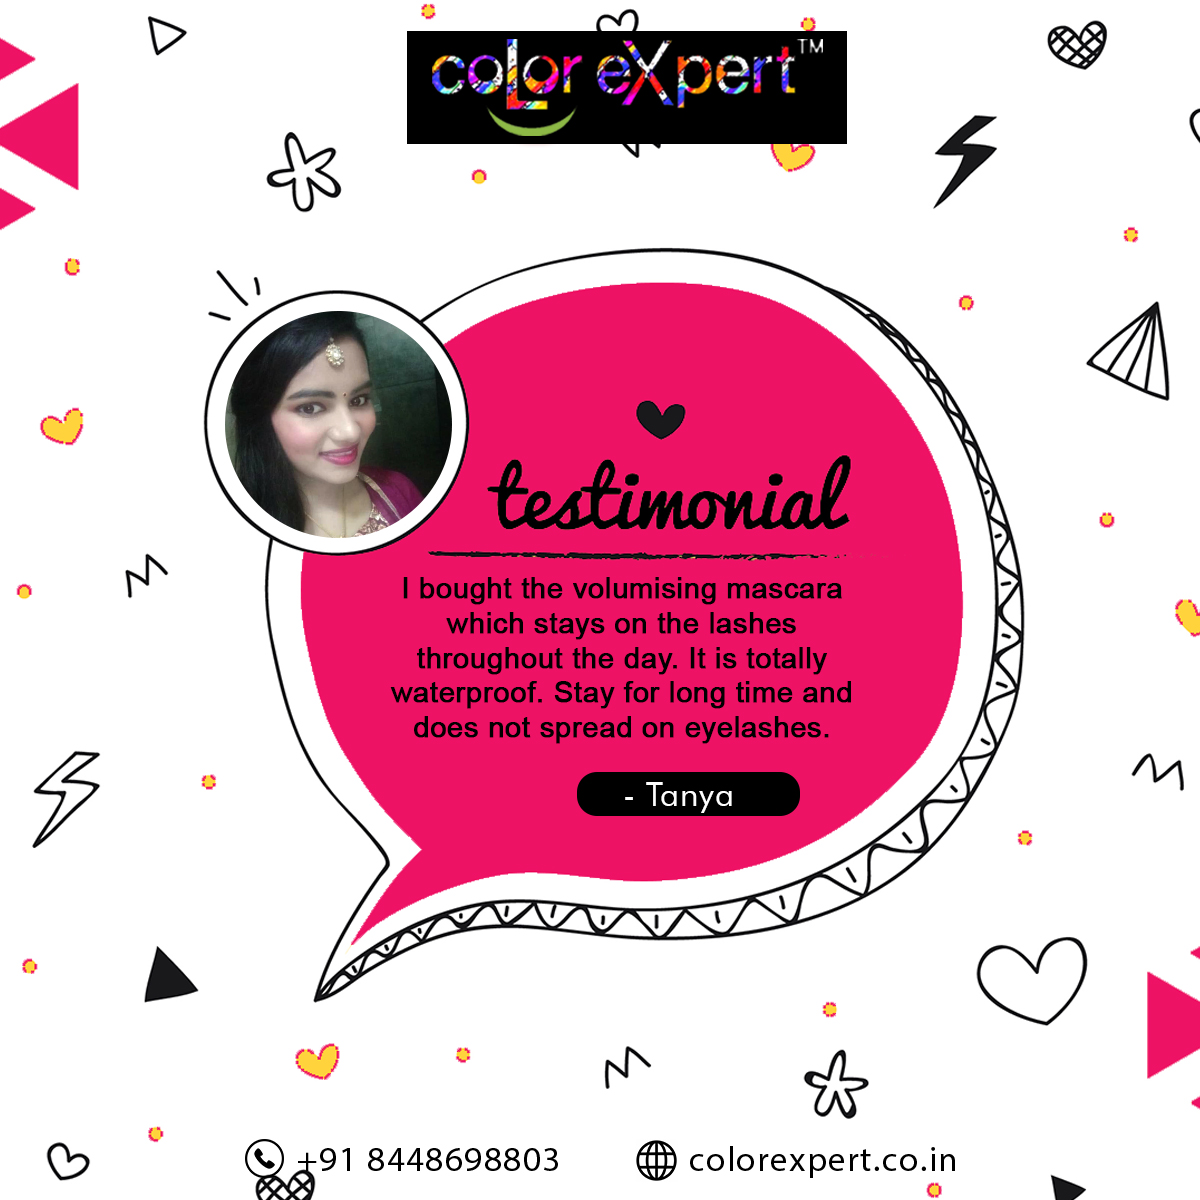 Our clients and customers are everything for us. We are glad they are happy with us! Thank you! #clientdiaries #reviews #colorexpertproducts #whatmakesyoubeautiful #professionalmakeup  https://youtu.be/TTW2lkkbHmA pic.twitter.com/pdG1UpkHC8